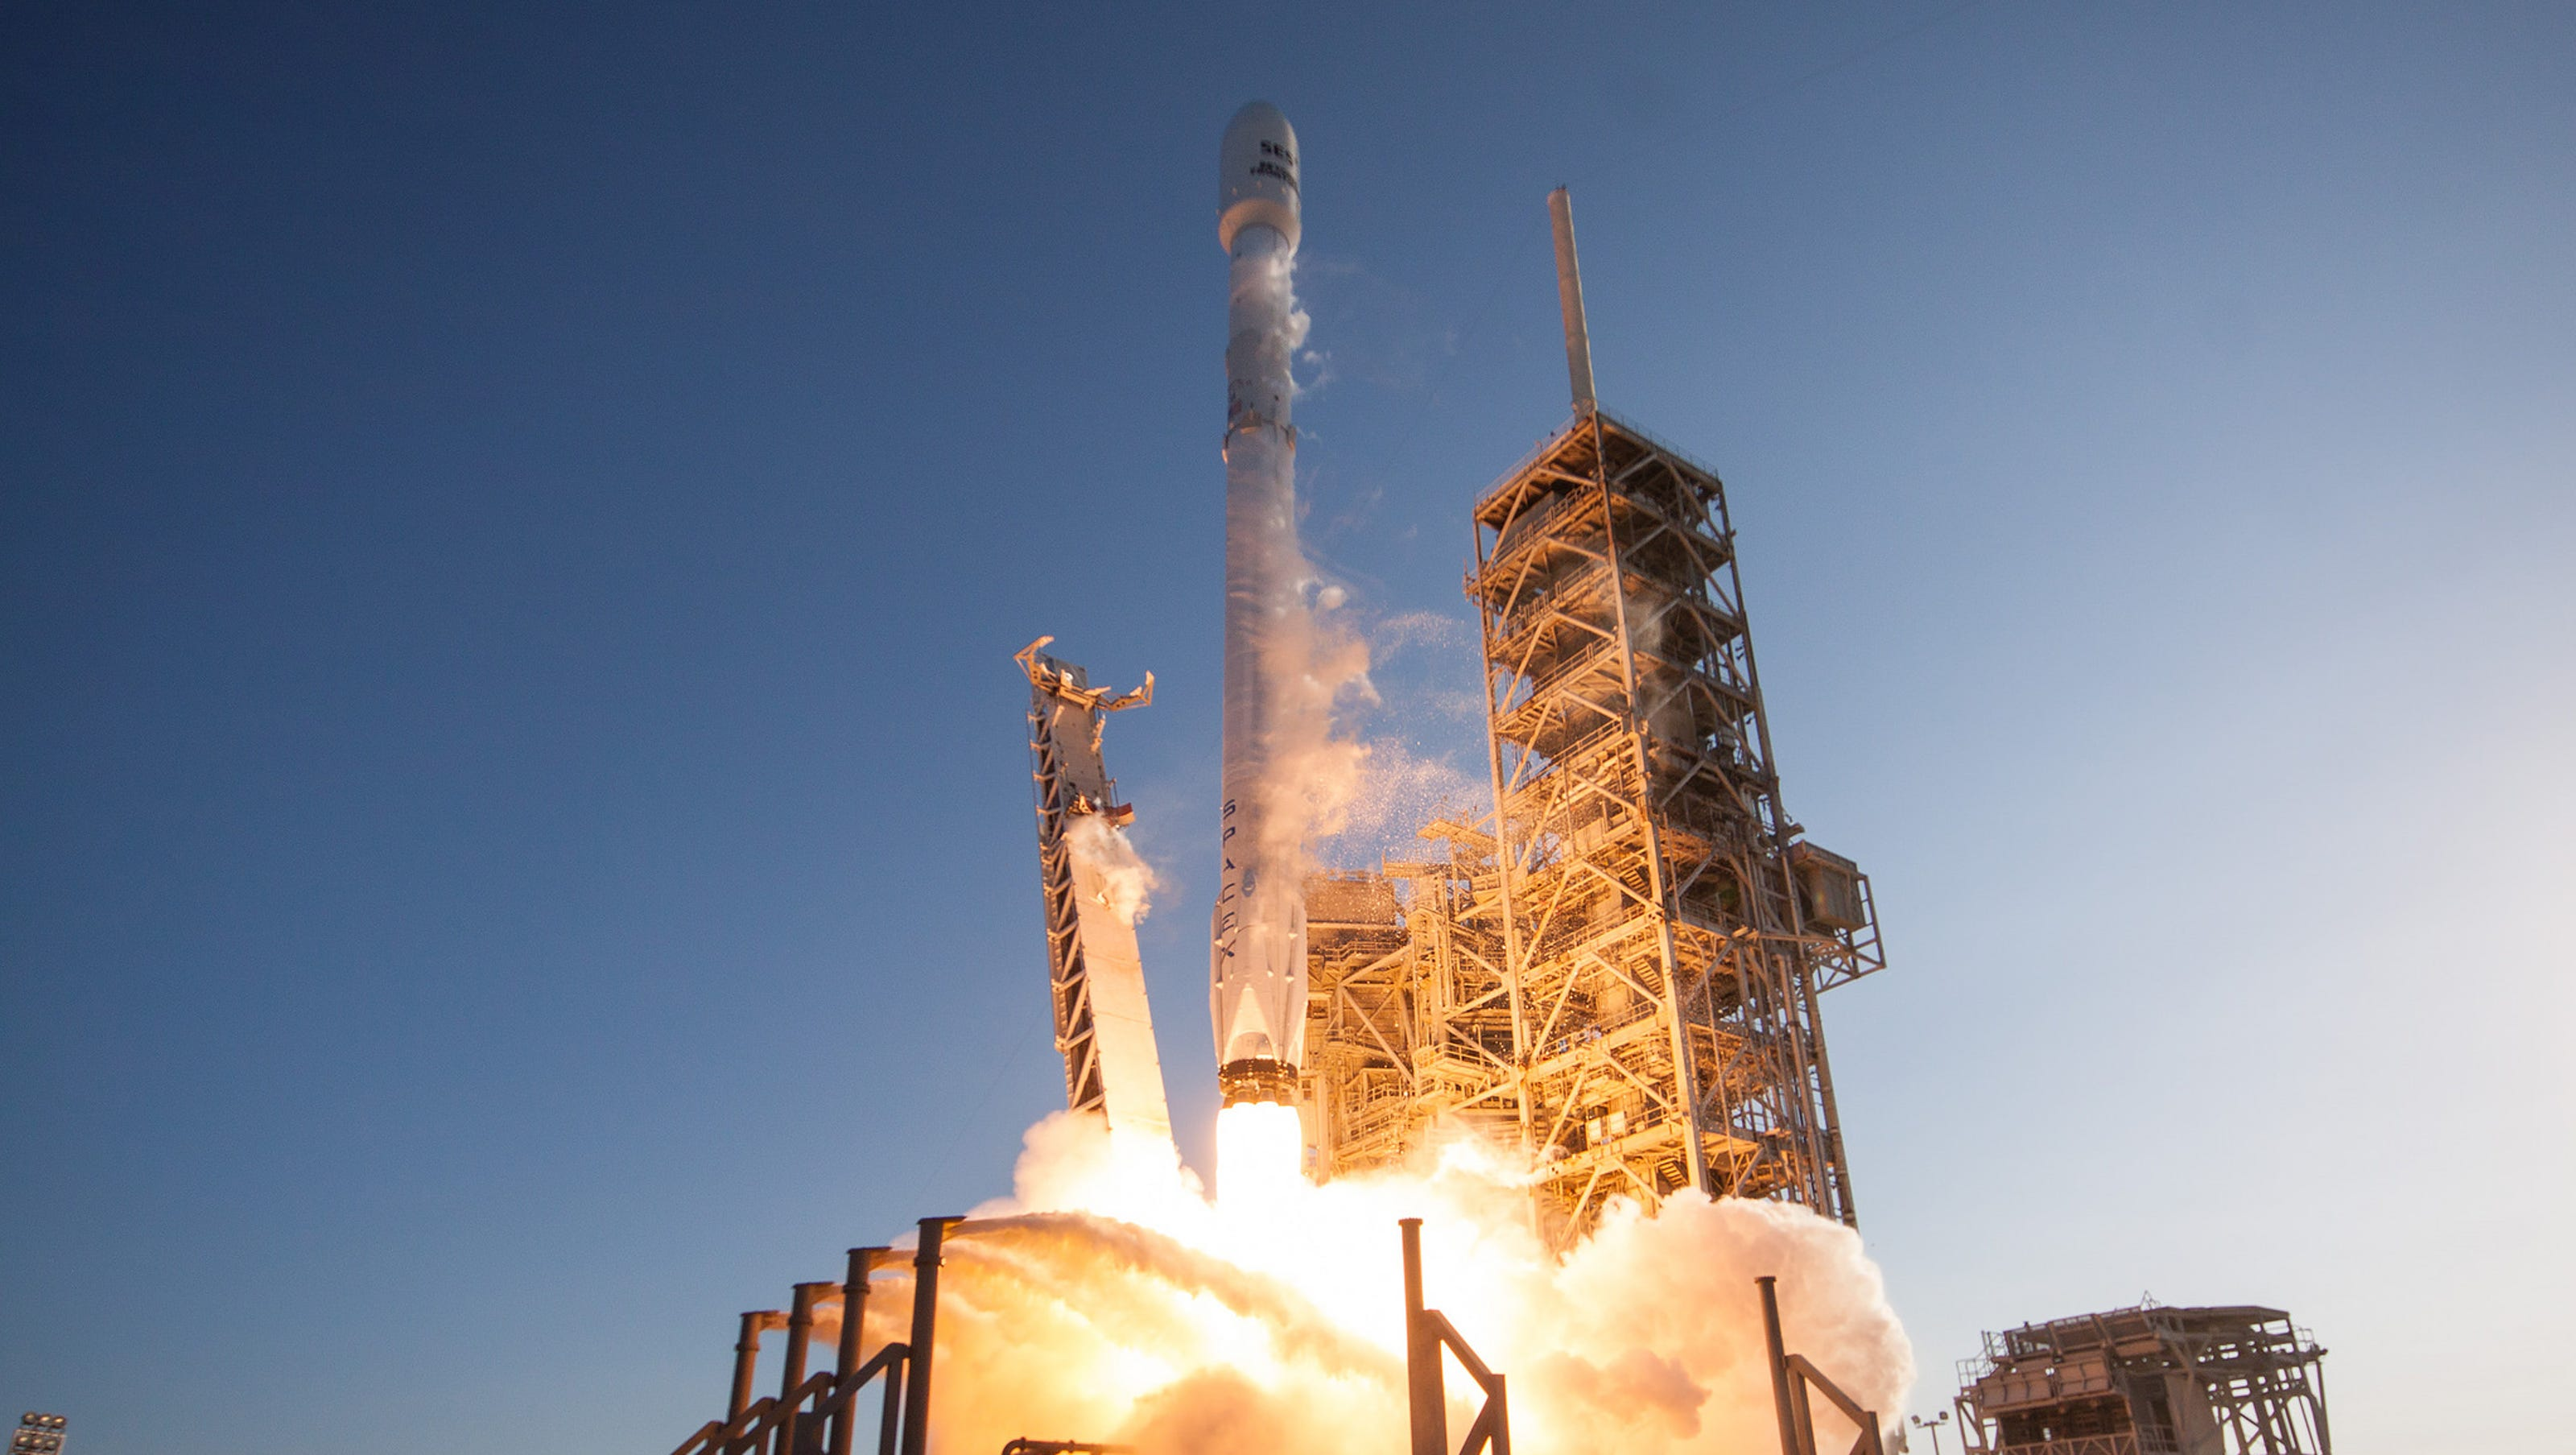 After One Year Reusing Rockets Becoming Routine For Spacex